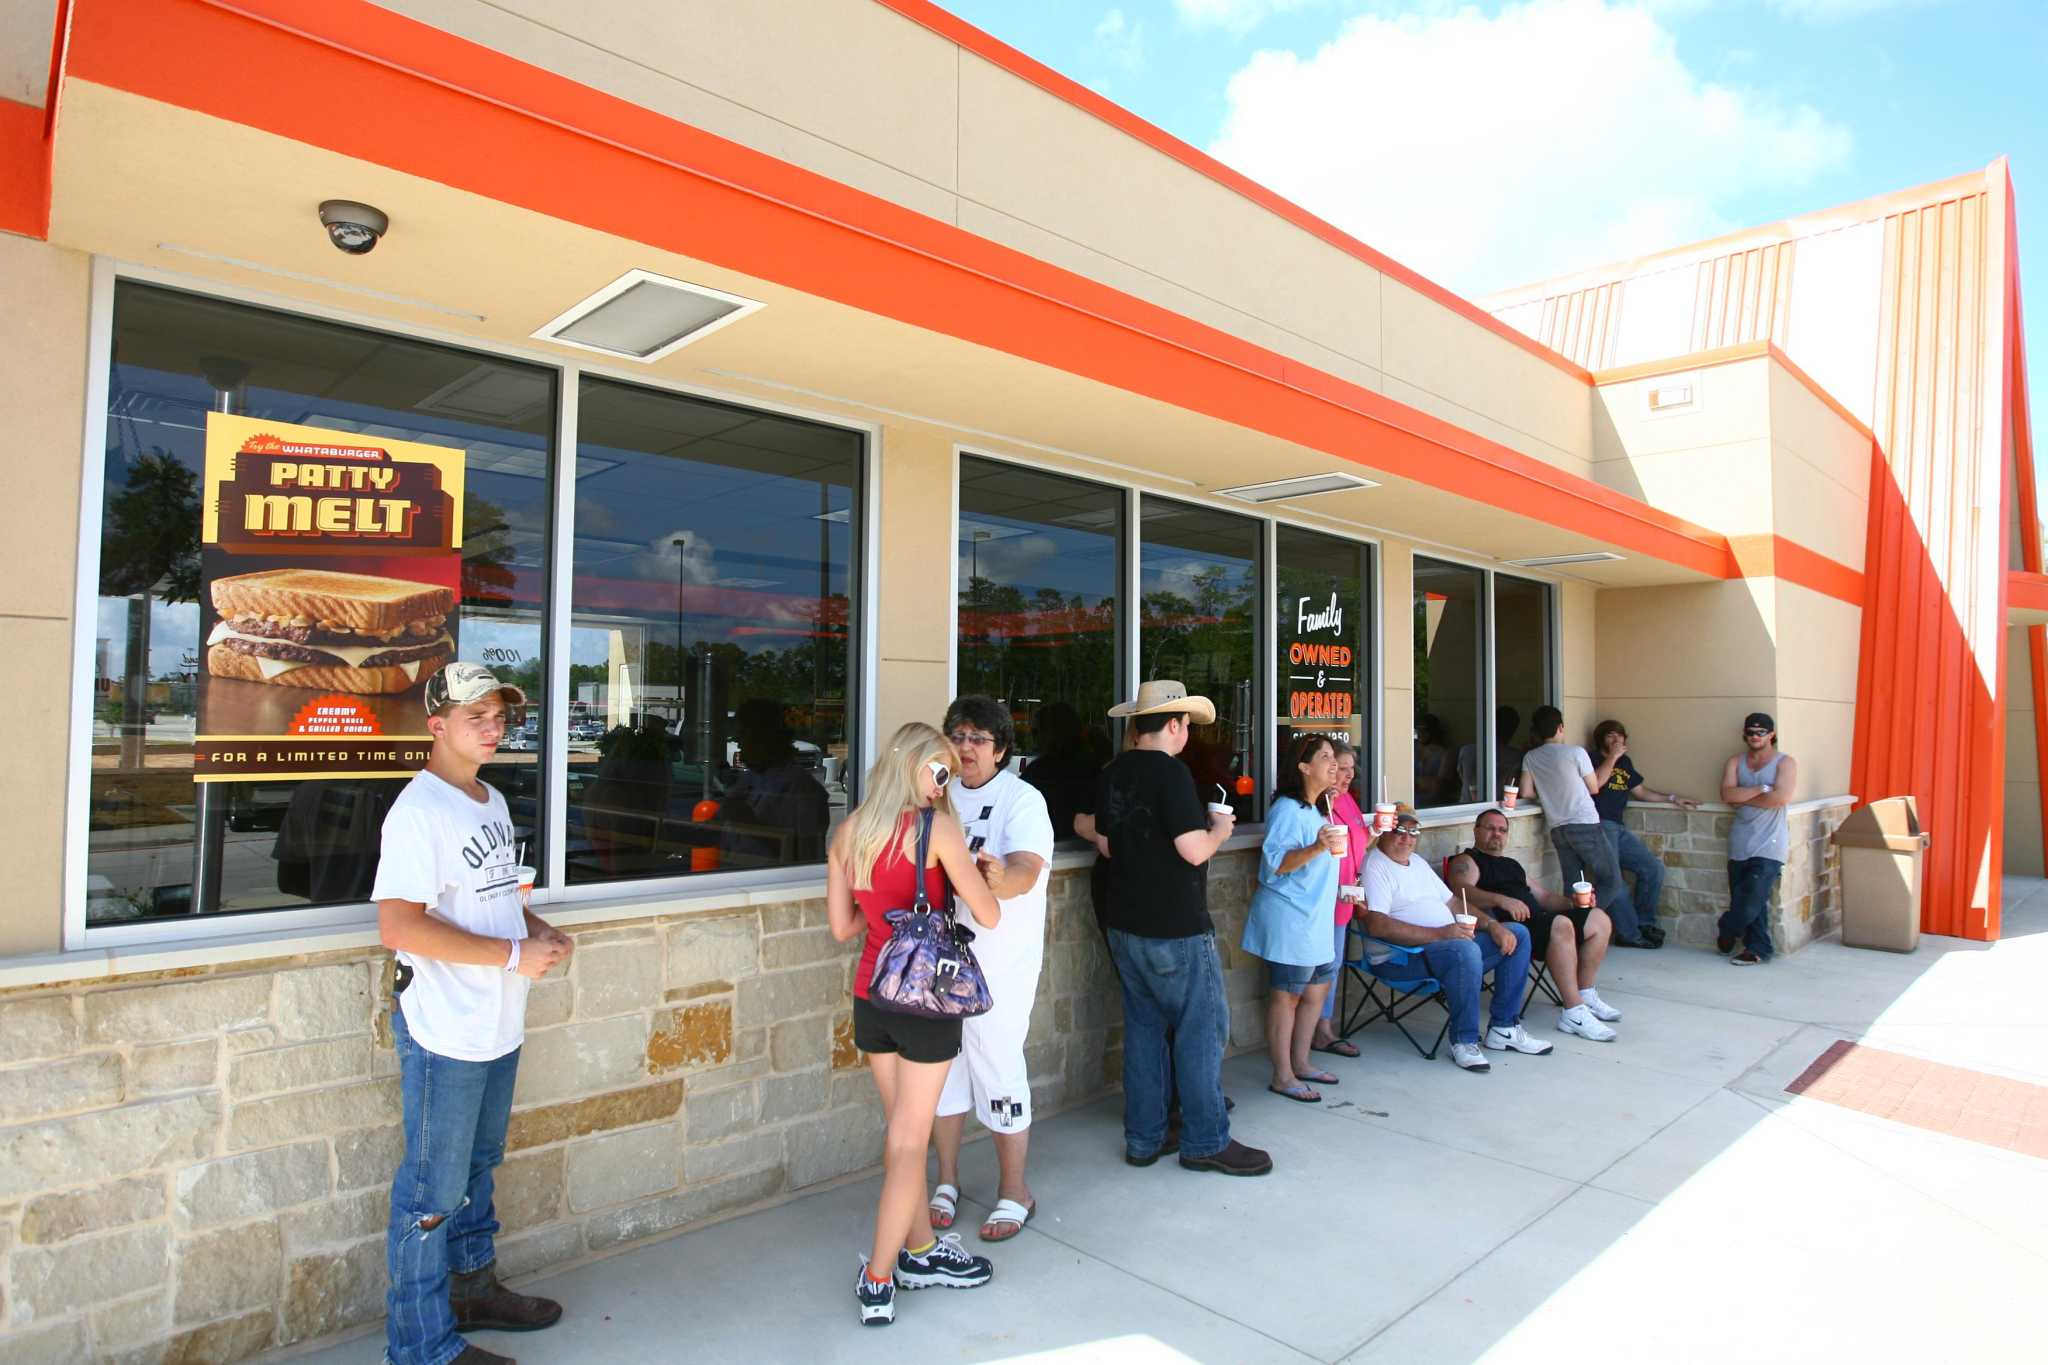 Texans hope their beloved Whataburger stays true under new Chicago owners